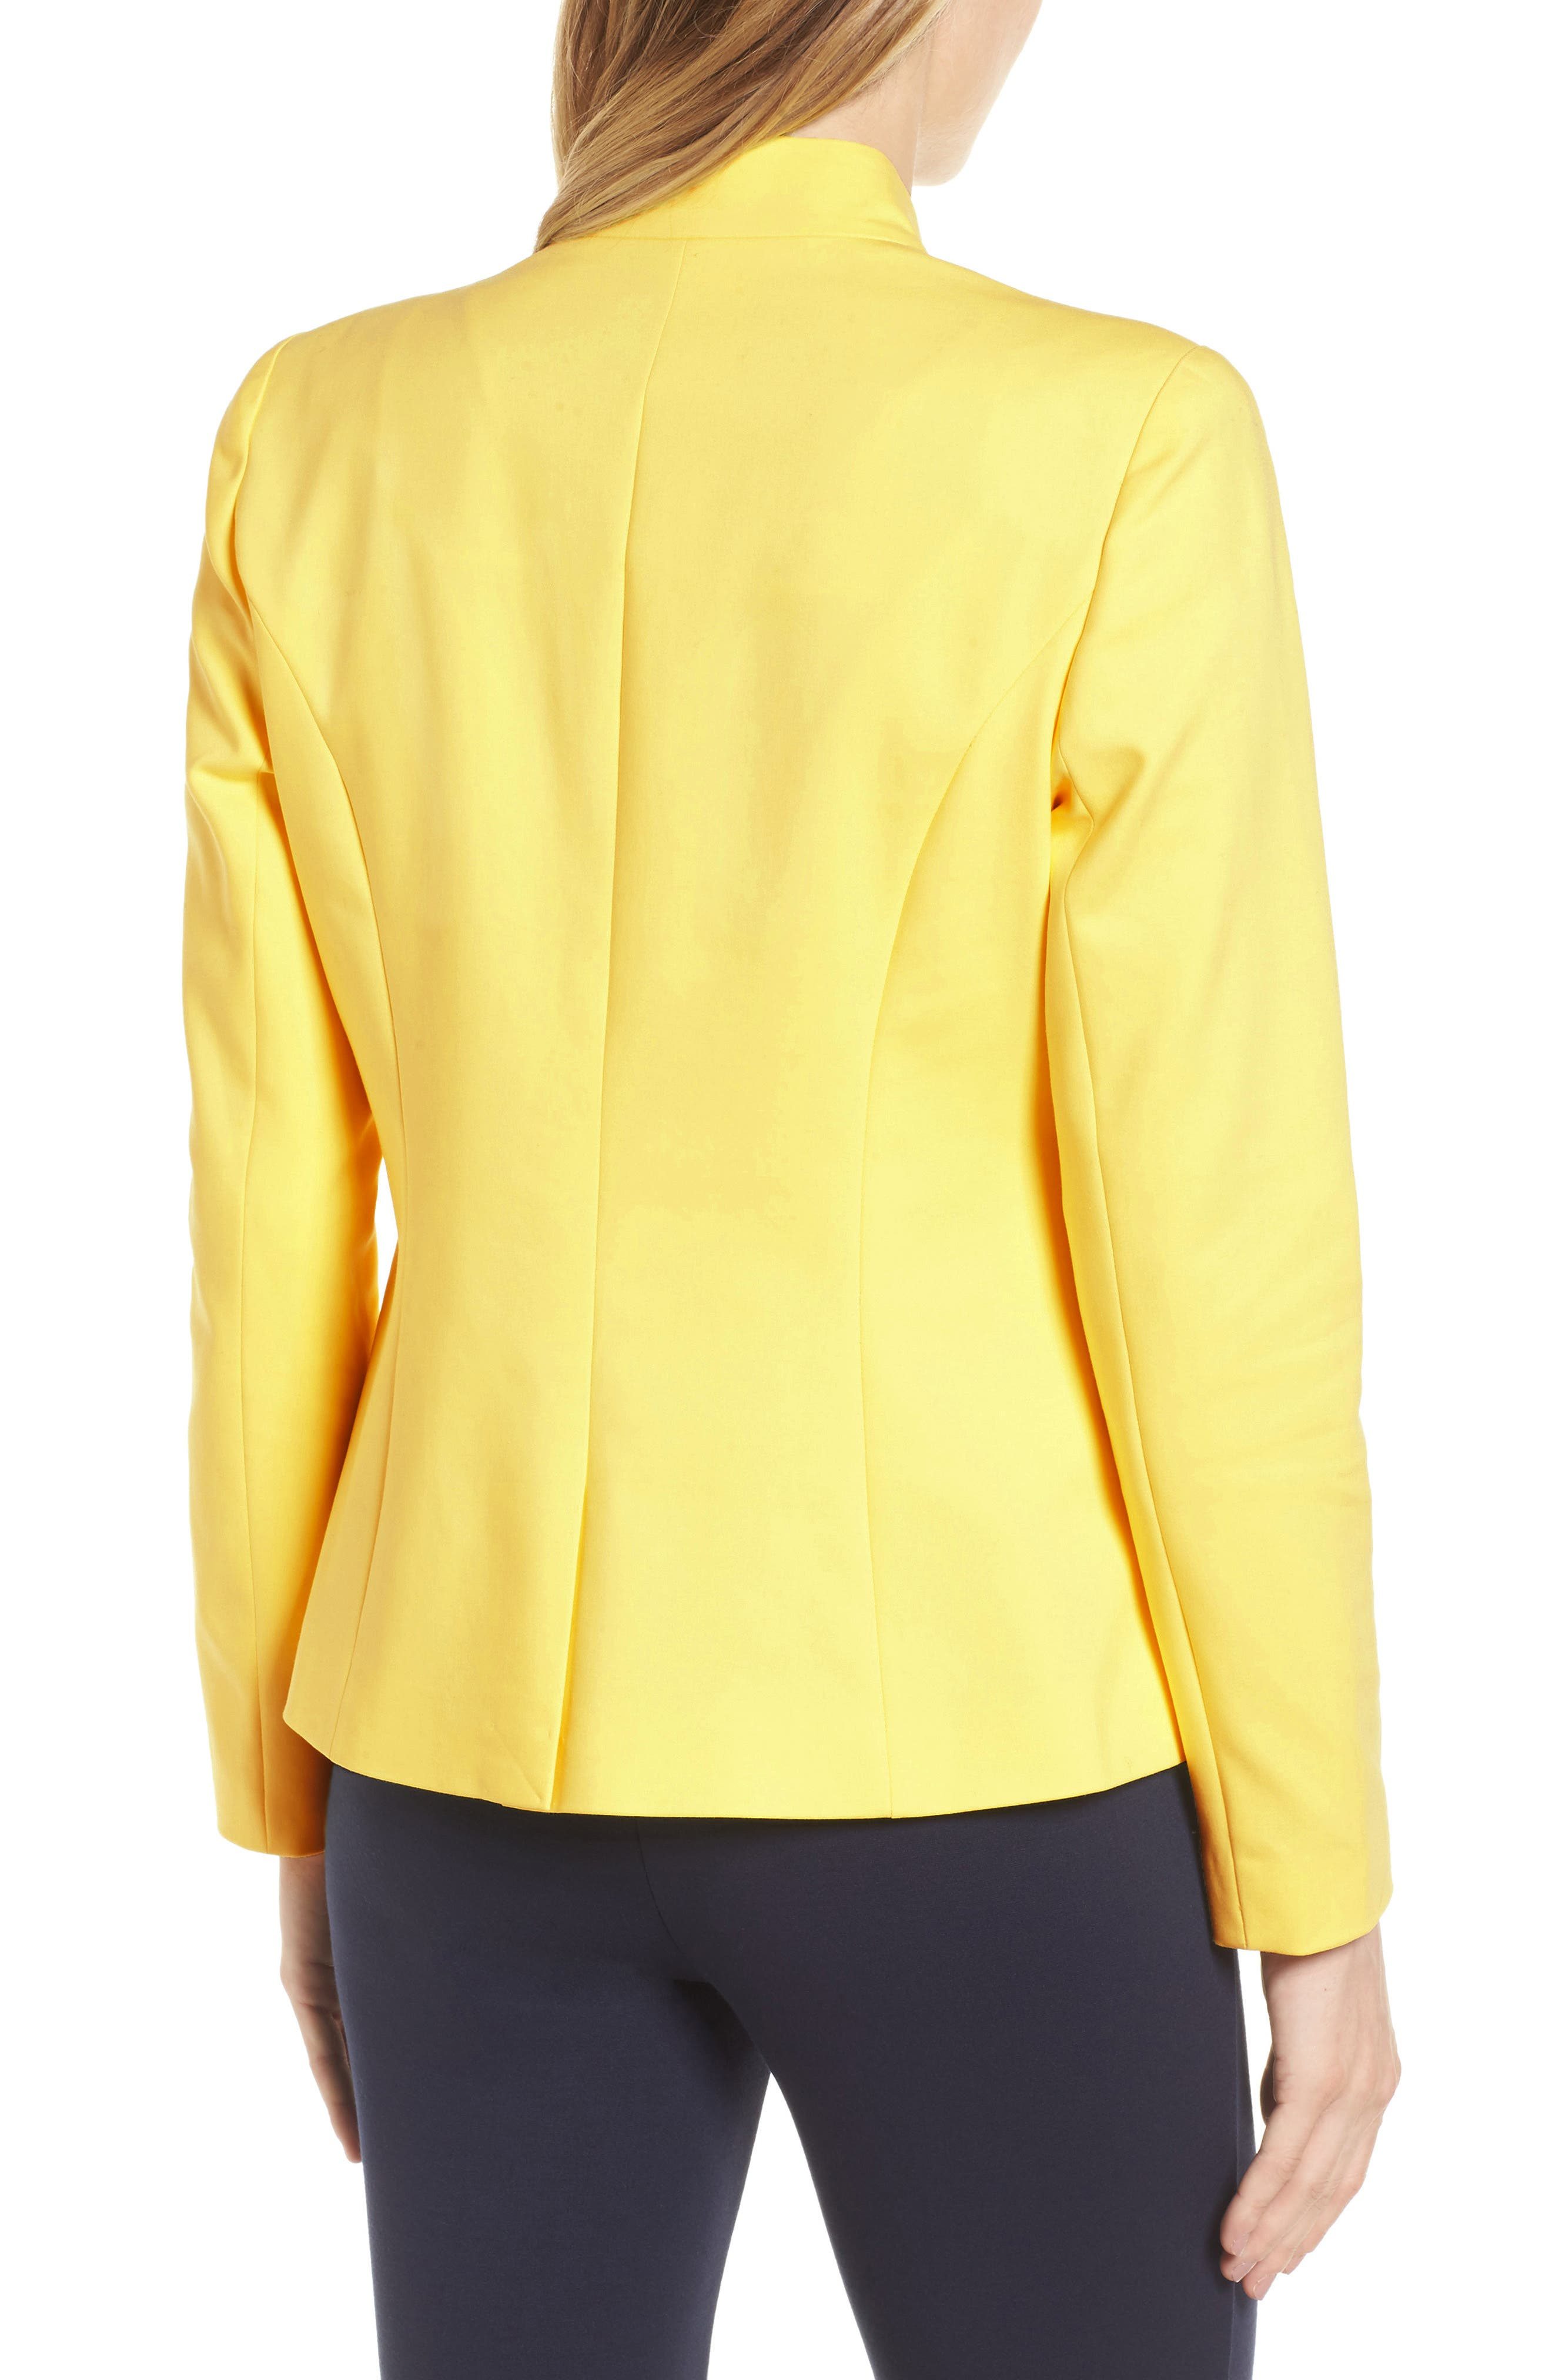 Stand Collar Jacket,                             Alternate thumbnail 2, color,                             784